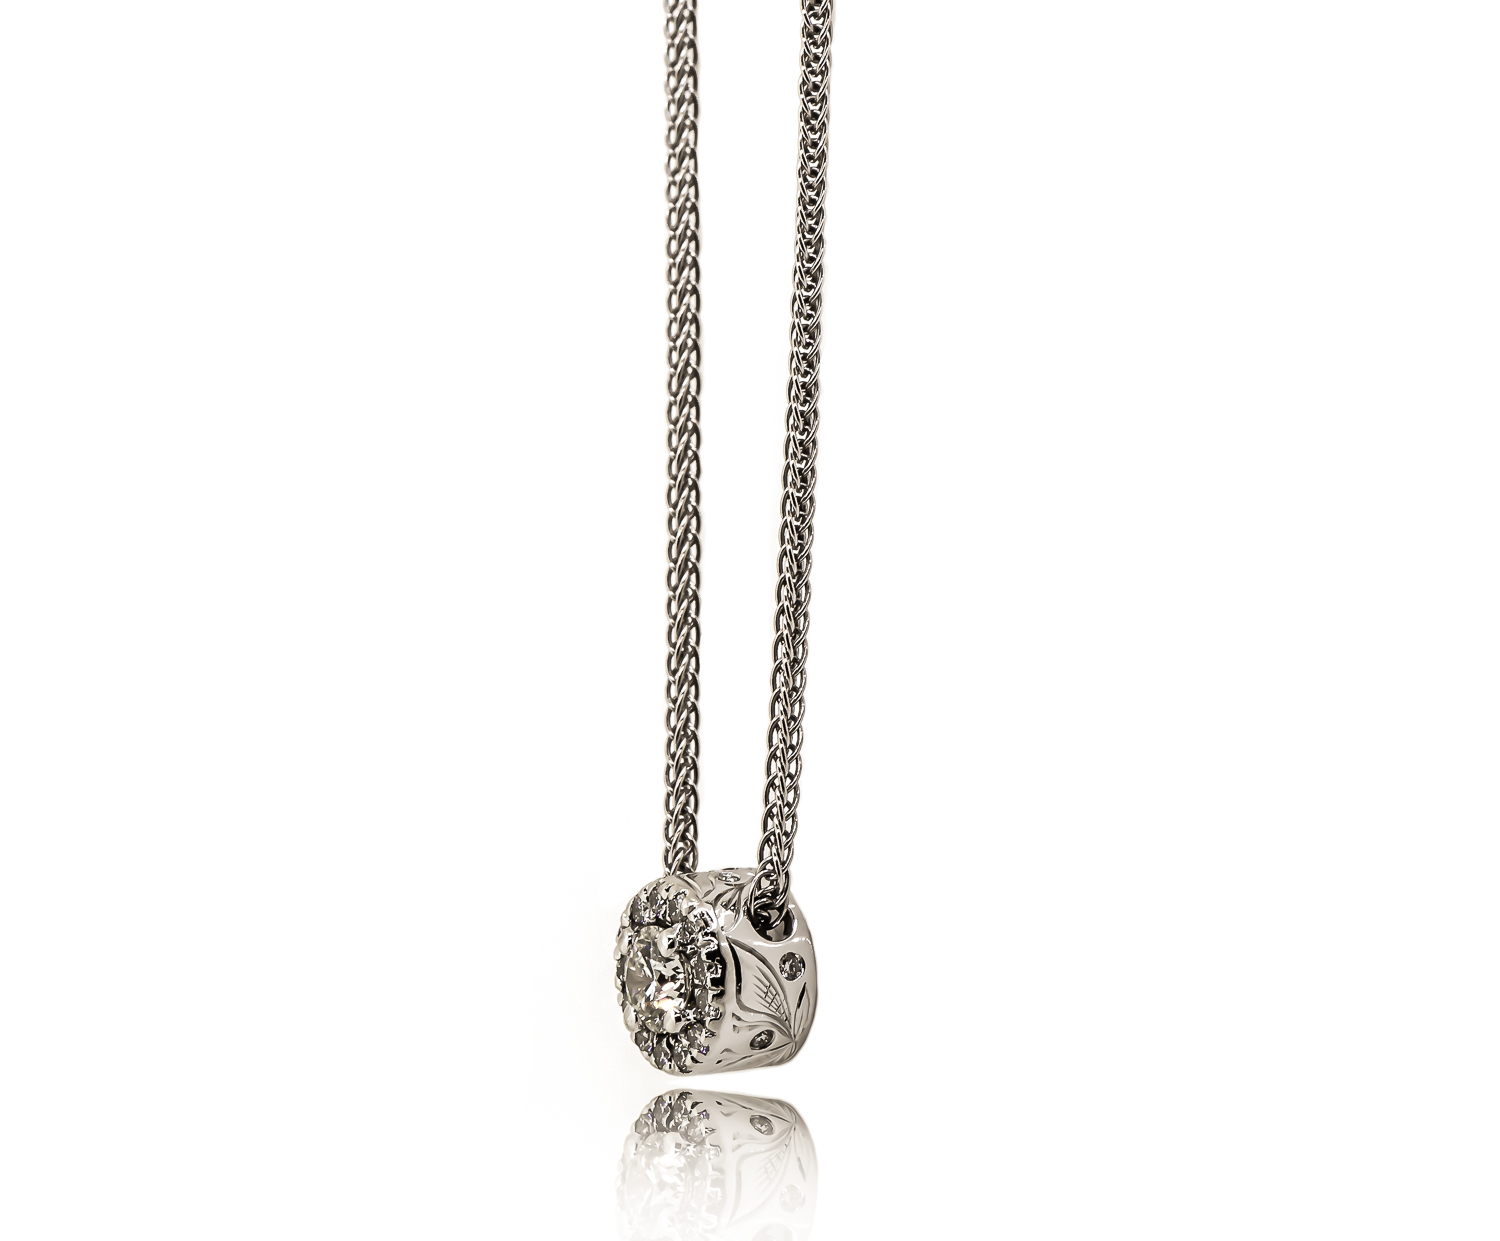 cabral pendant with engraving (1 of 1)-2.jpg